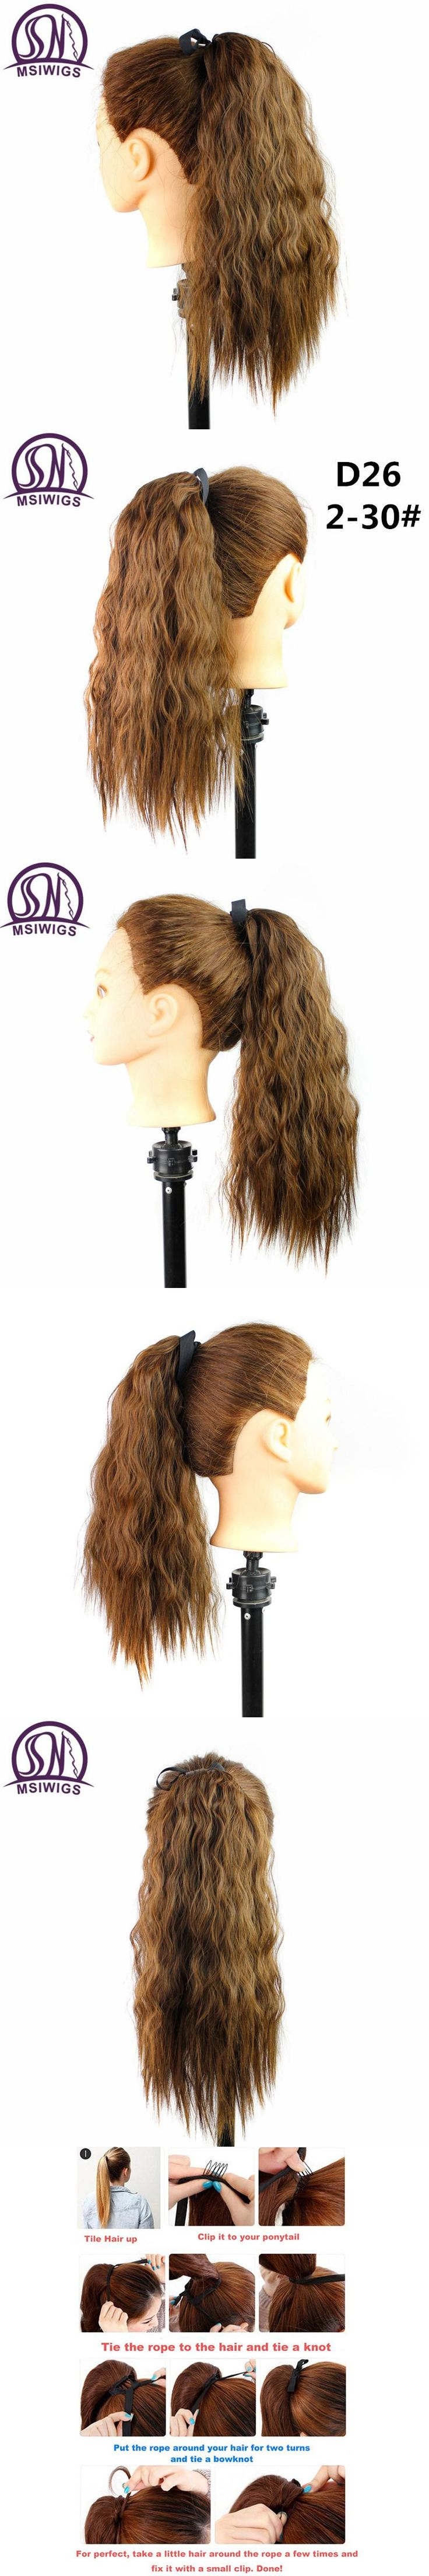 MSIWIGS long Curly Synthetic Ponytail Hair Extensions Tie Up Clip In Brown Ombre Hairpieces False Hair